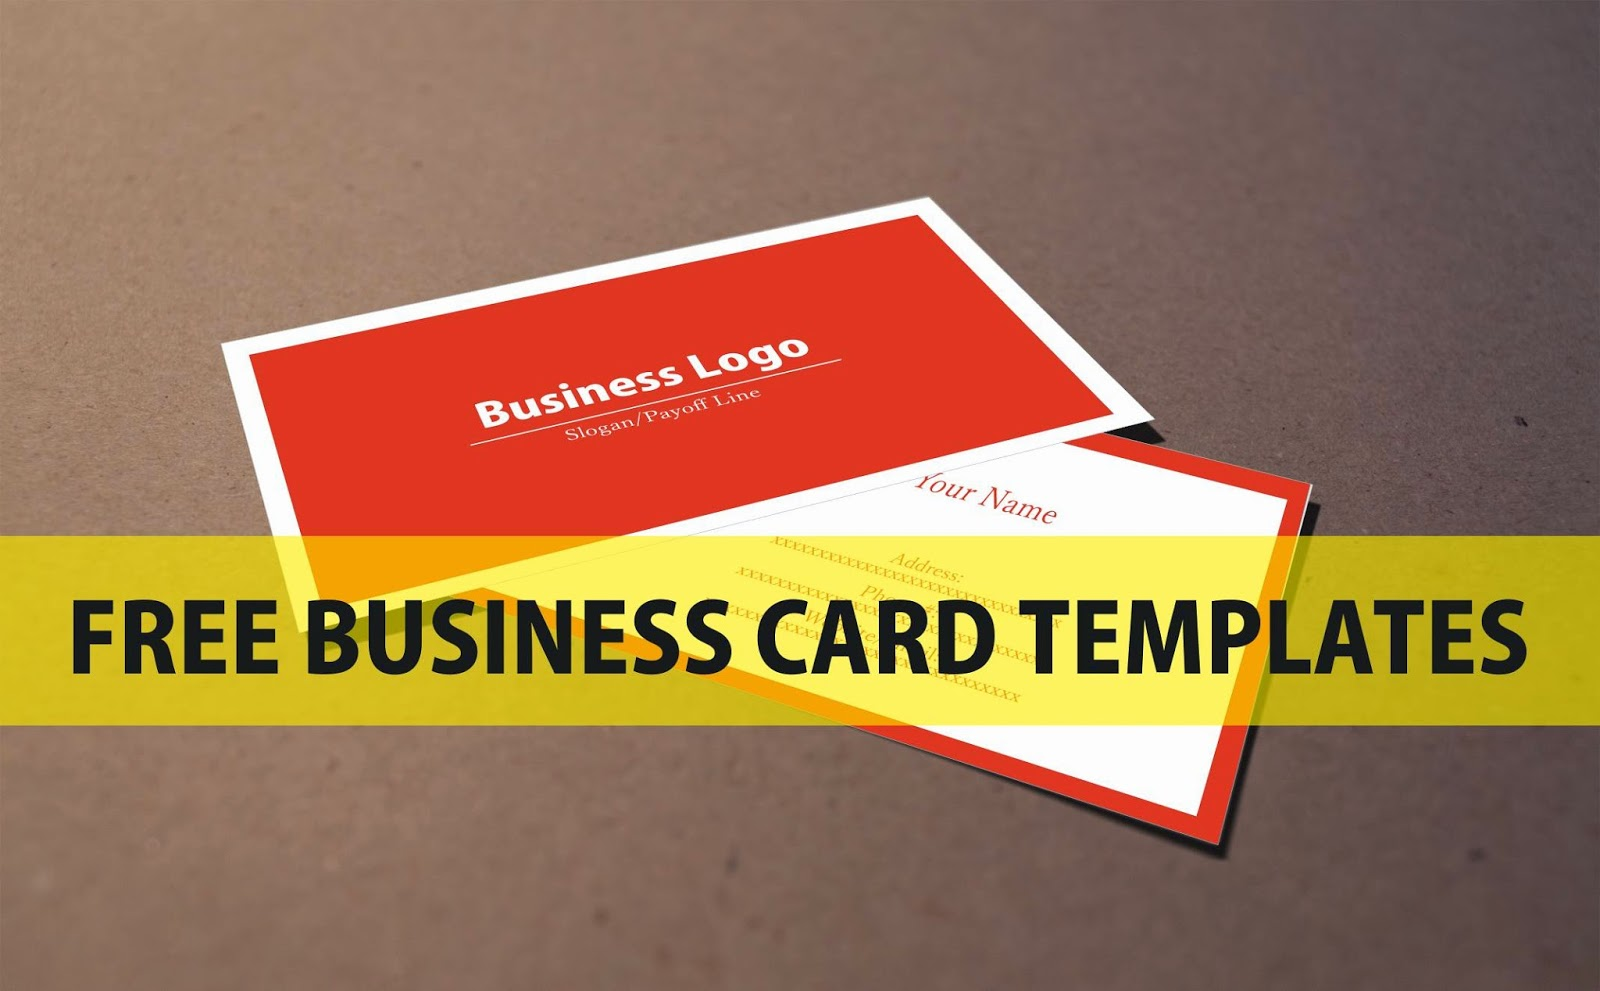 Free business card template download coreldraw file a graphic free business card template download coreldraw file flashek Images